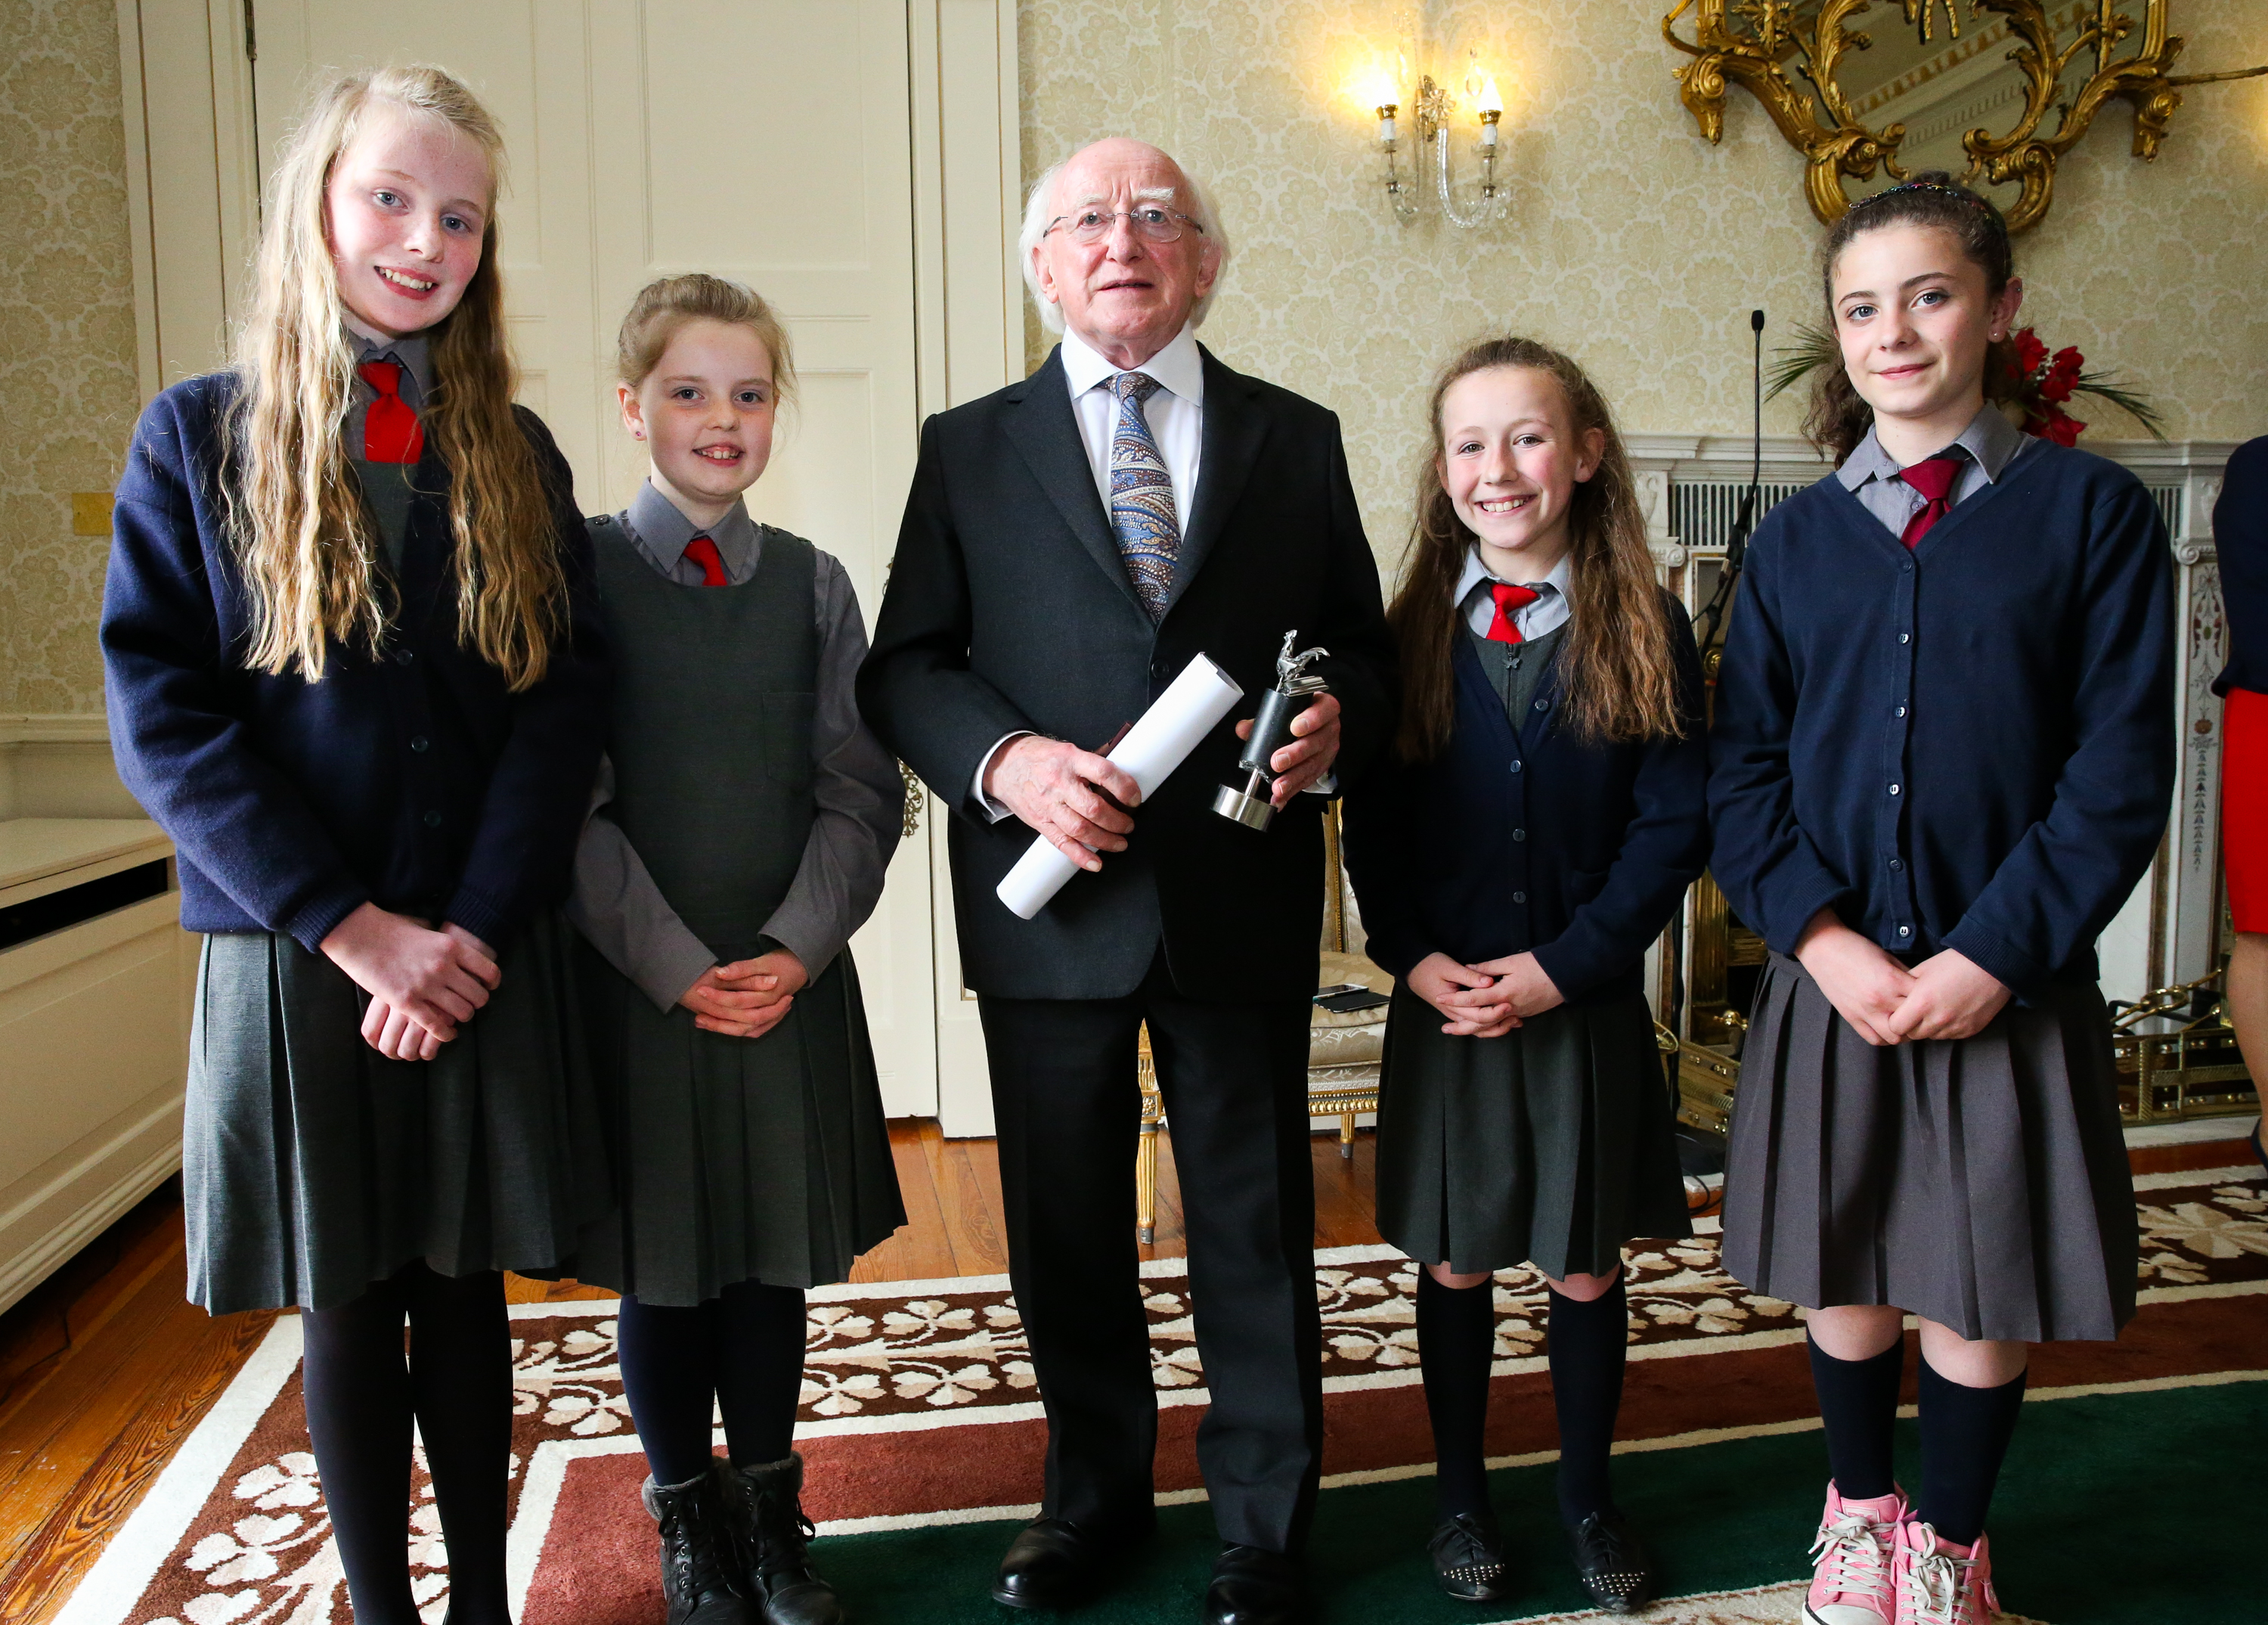 Laura Miller, Sinéad Buggy, Róisín Dunne and Jamie Boyle are pictured with Irish President Michael D. Higgins